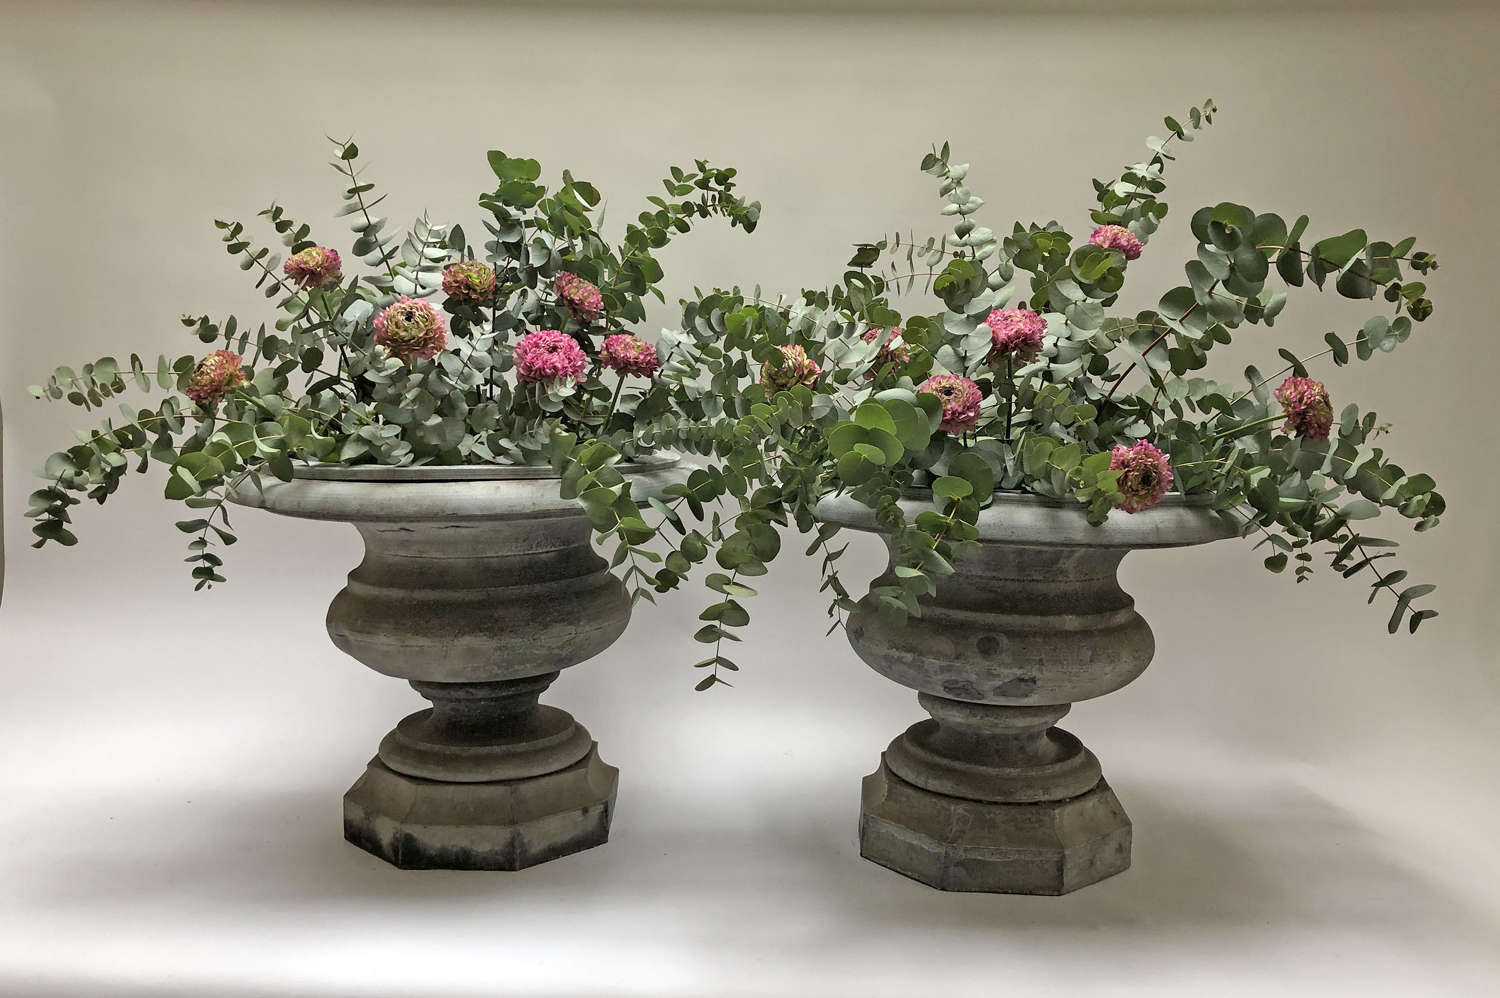 Beautiful Pair of early 19th French Zinc Urns - 1830